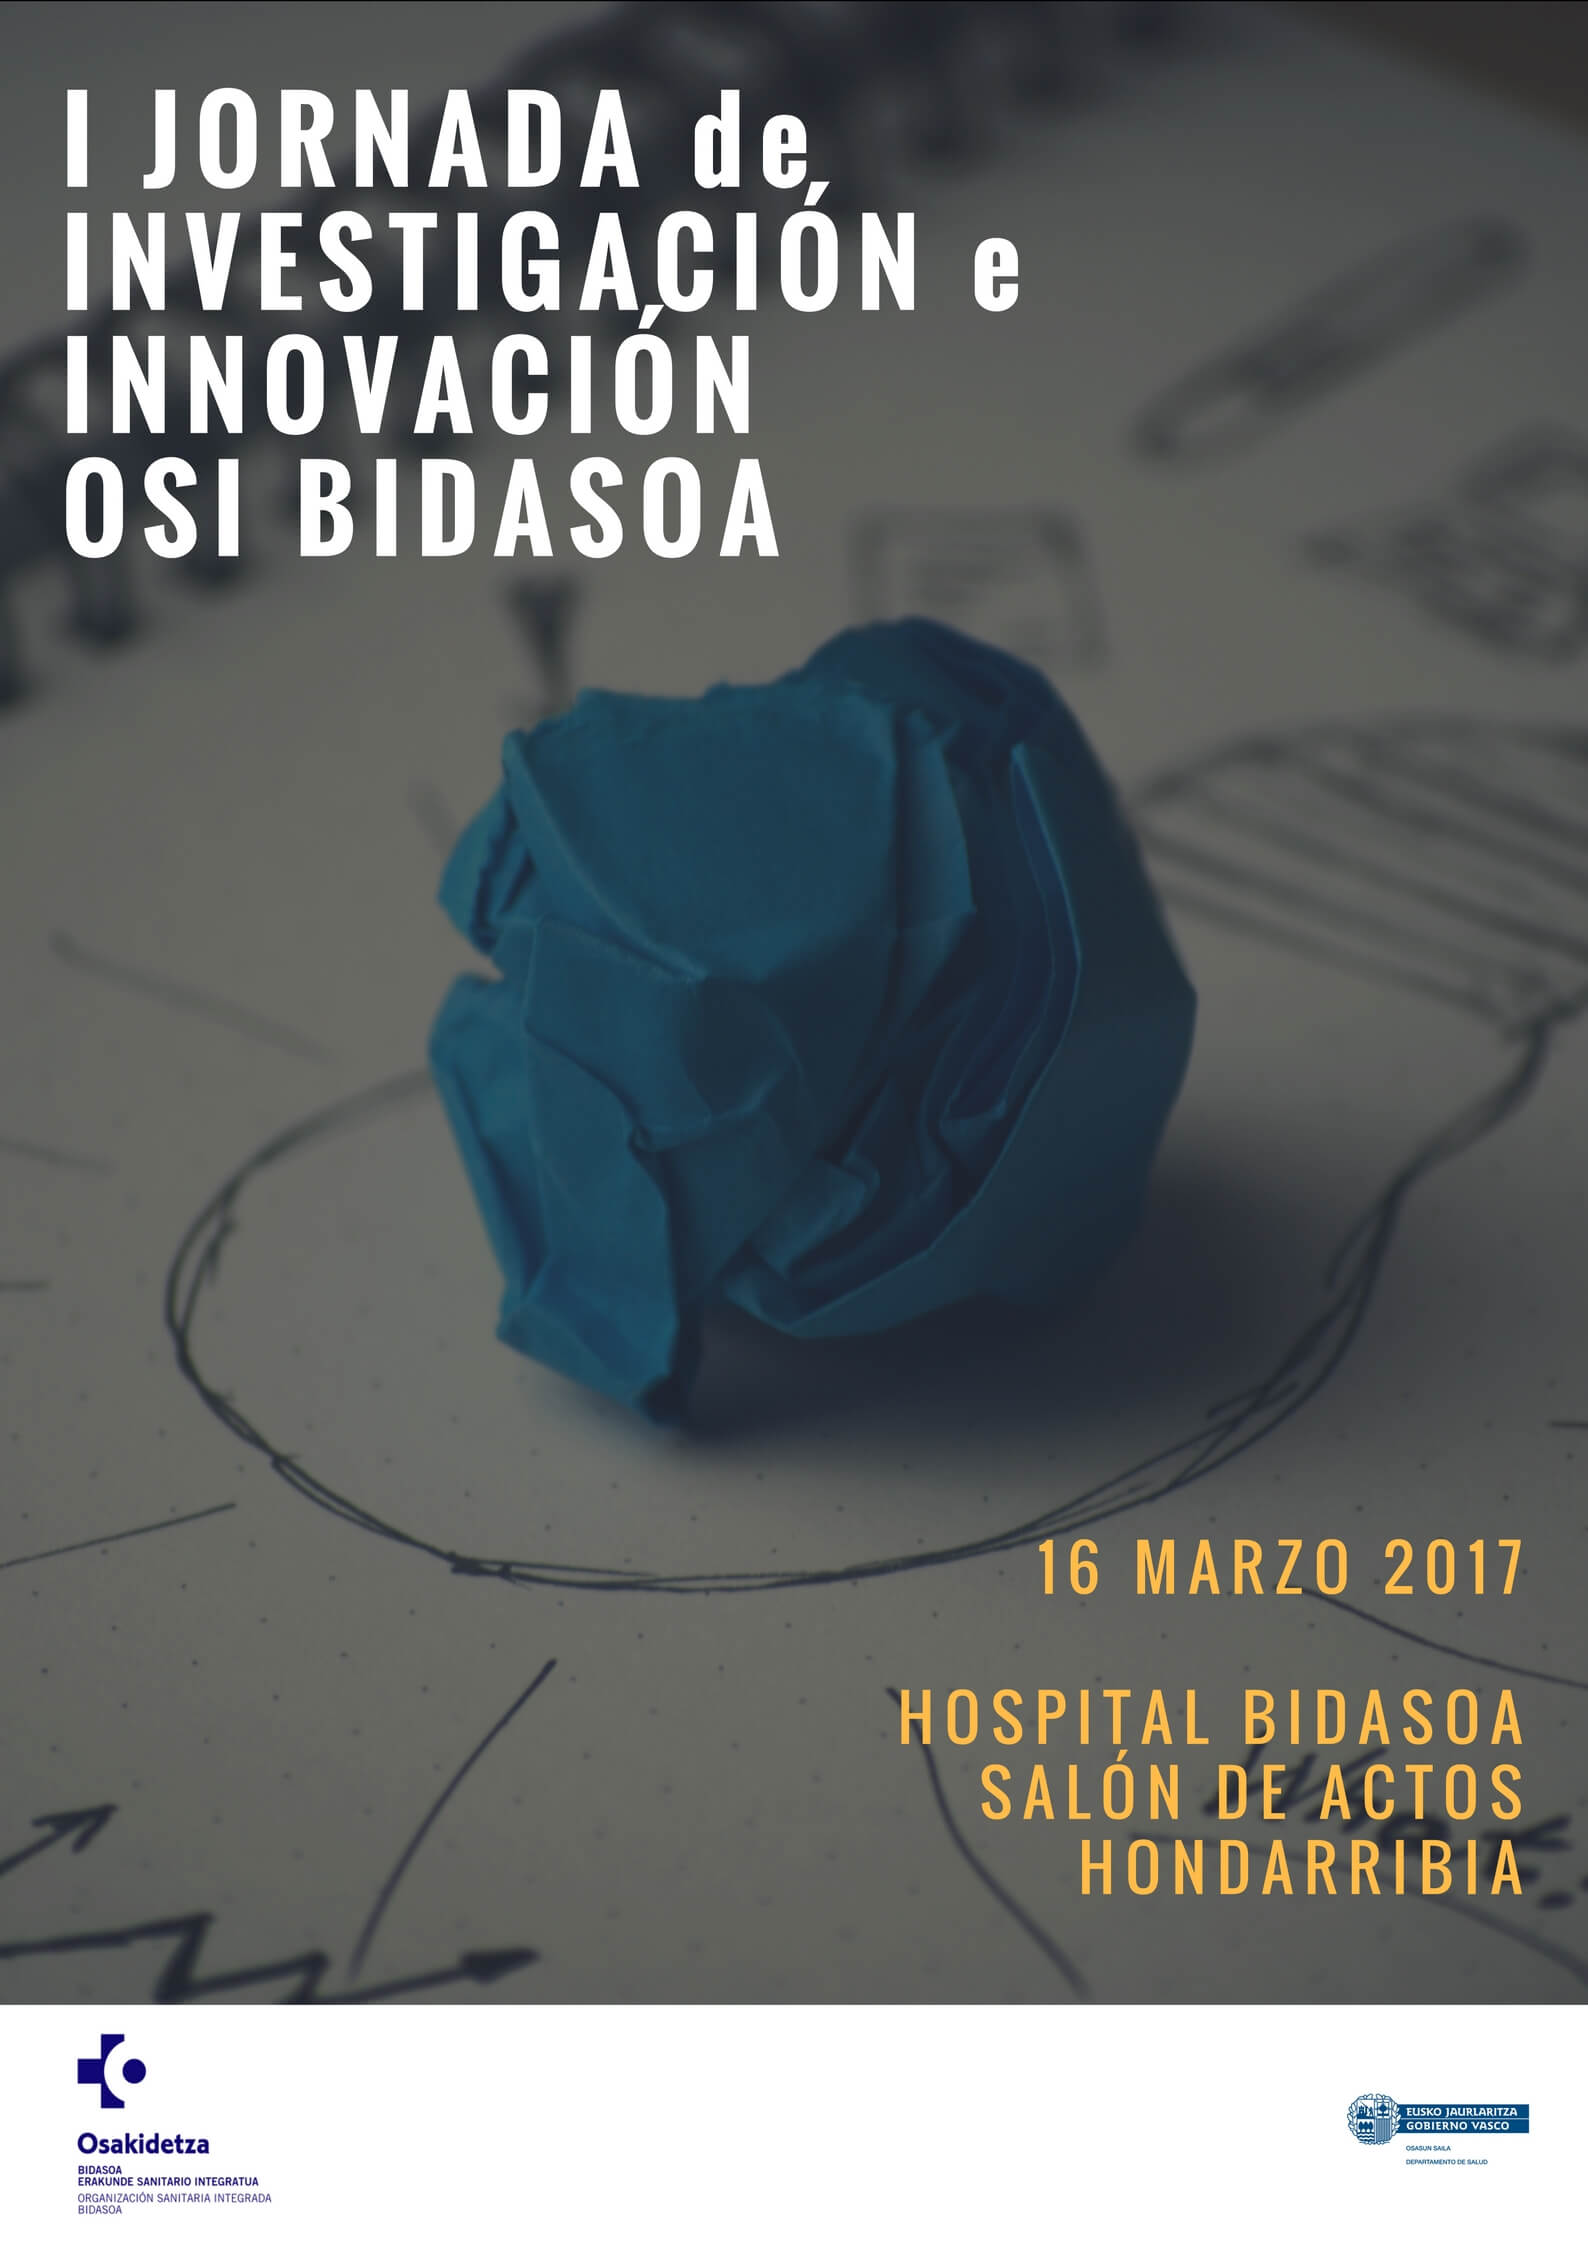 Poster of the 1st Research and Innovation Conference organised by Bidasoa IHO